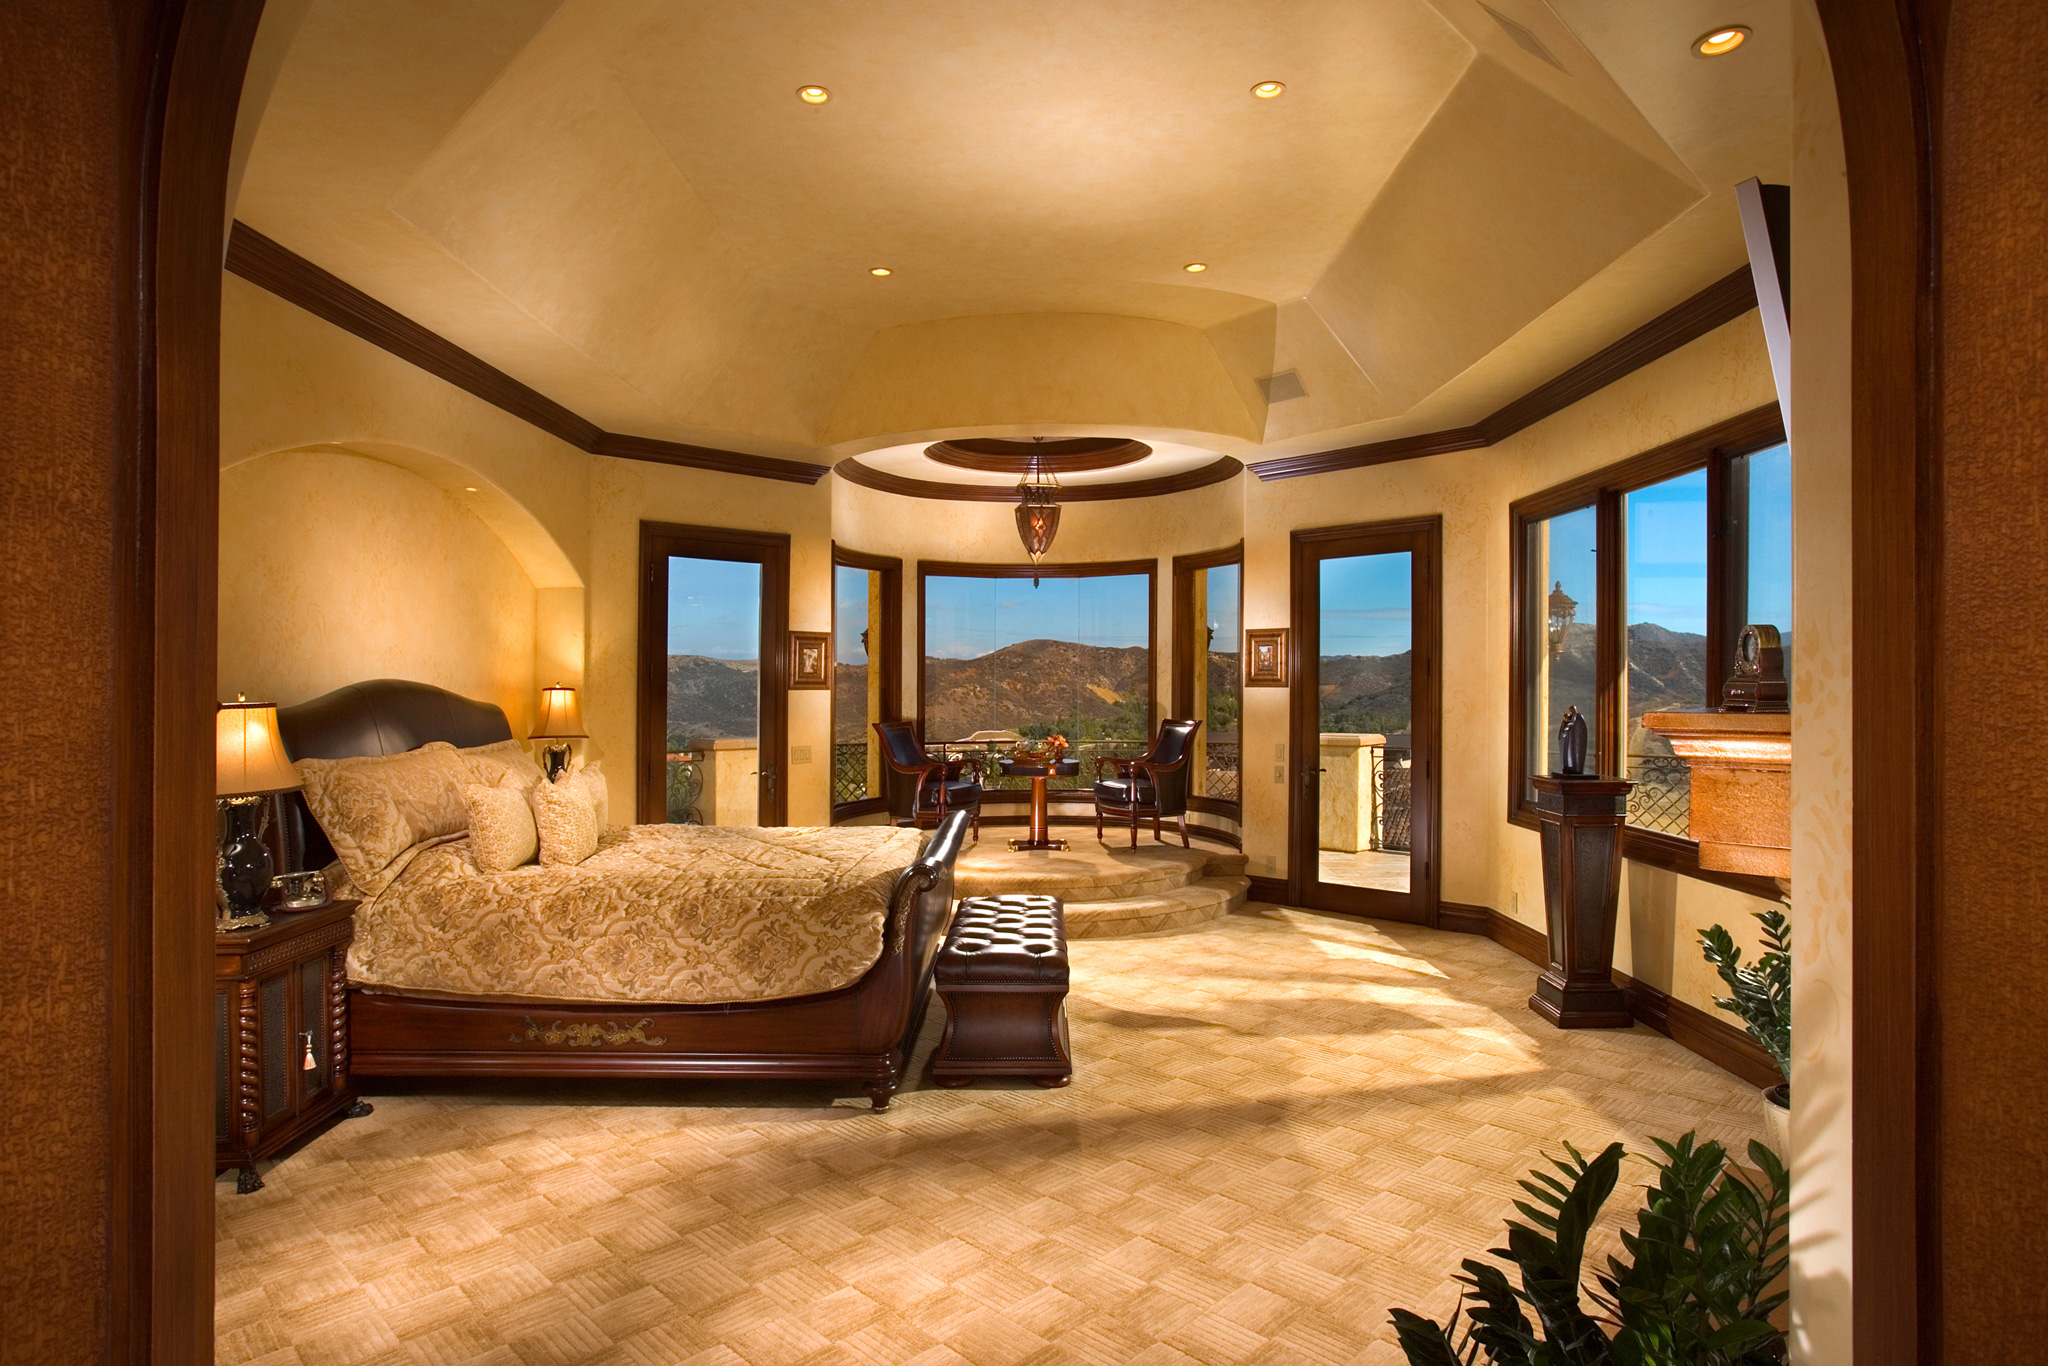 68 jaw dropping luxury master bedroom designs home garden sphere - Master Bedroom Designs